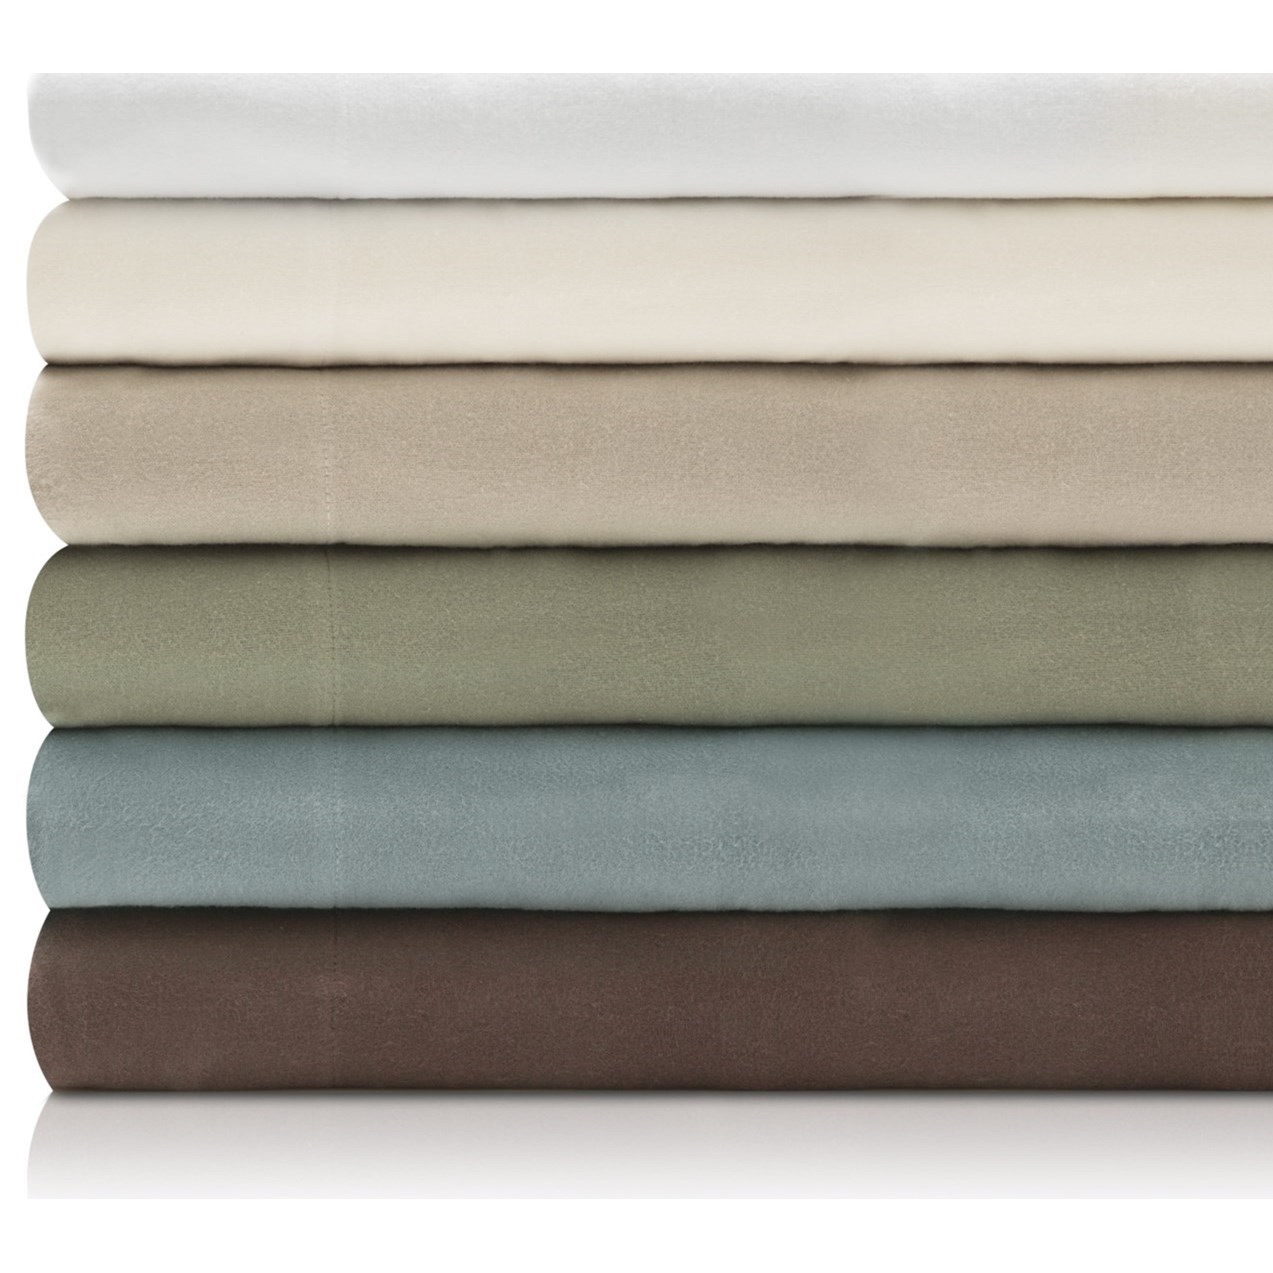 Malouf Portuguese Flannel King Woven™ Portuguese Flannel Pillowcases  - Item Number: WO19KKWHFC